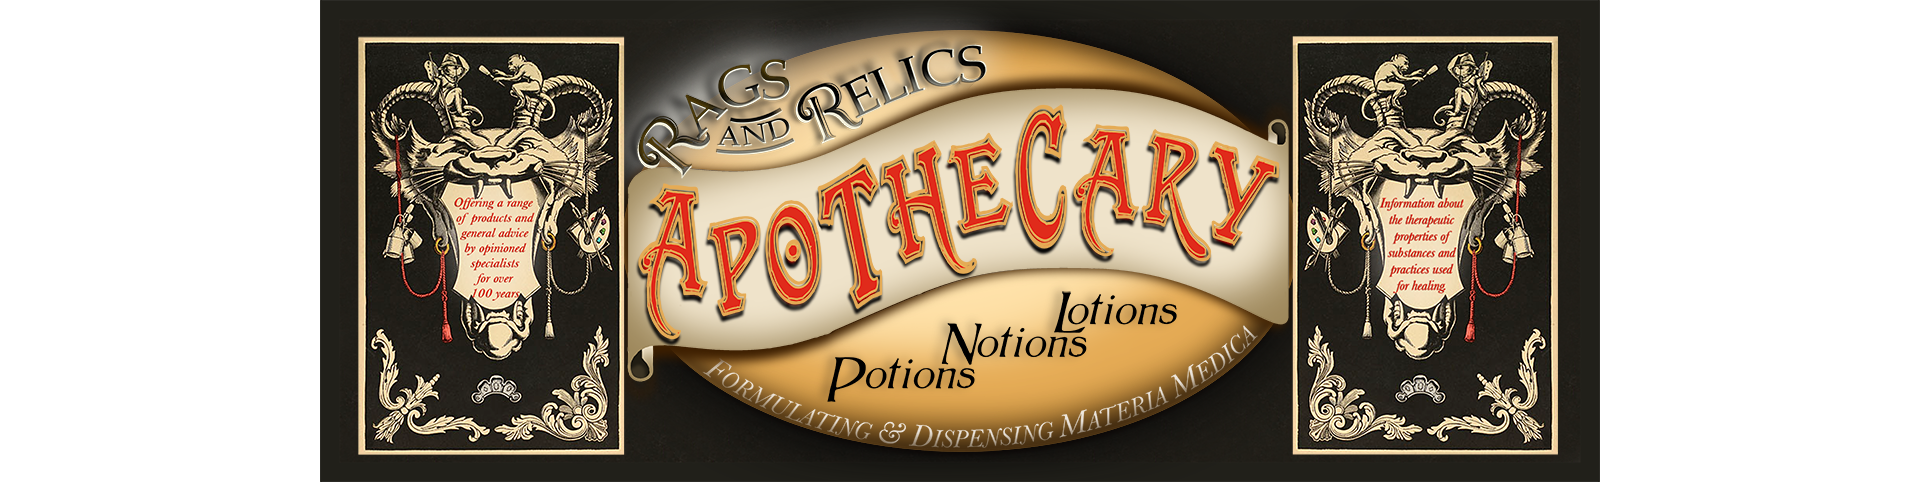 apothecary-1920x482.png